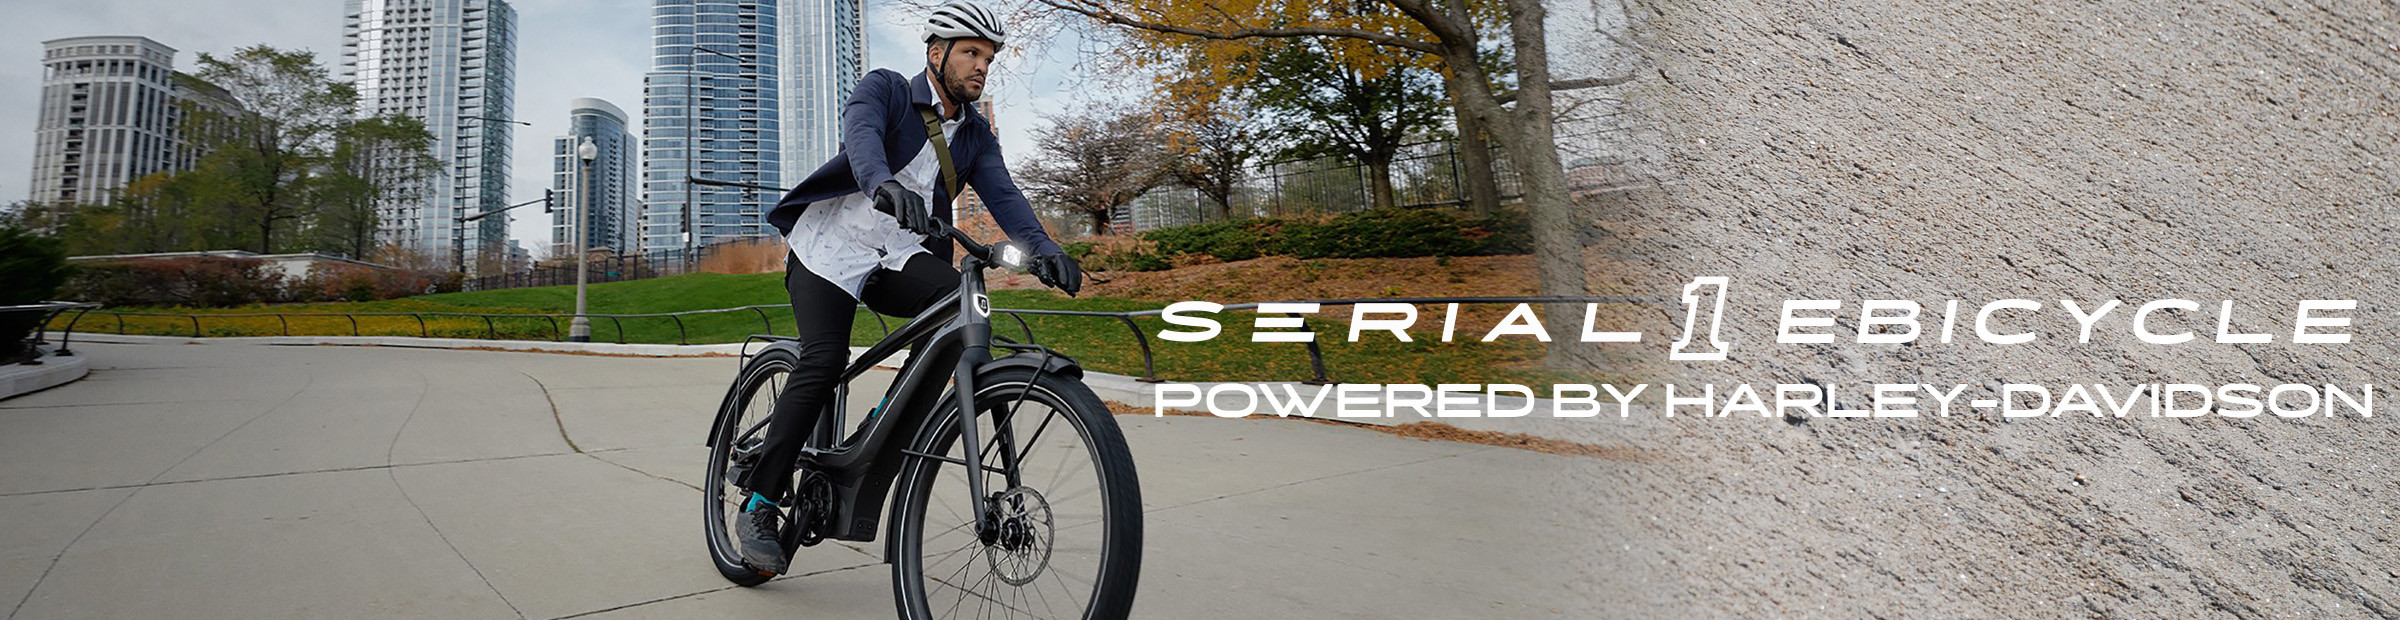 Serial 1 Electric Bicycles